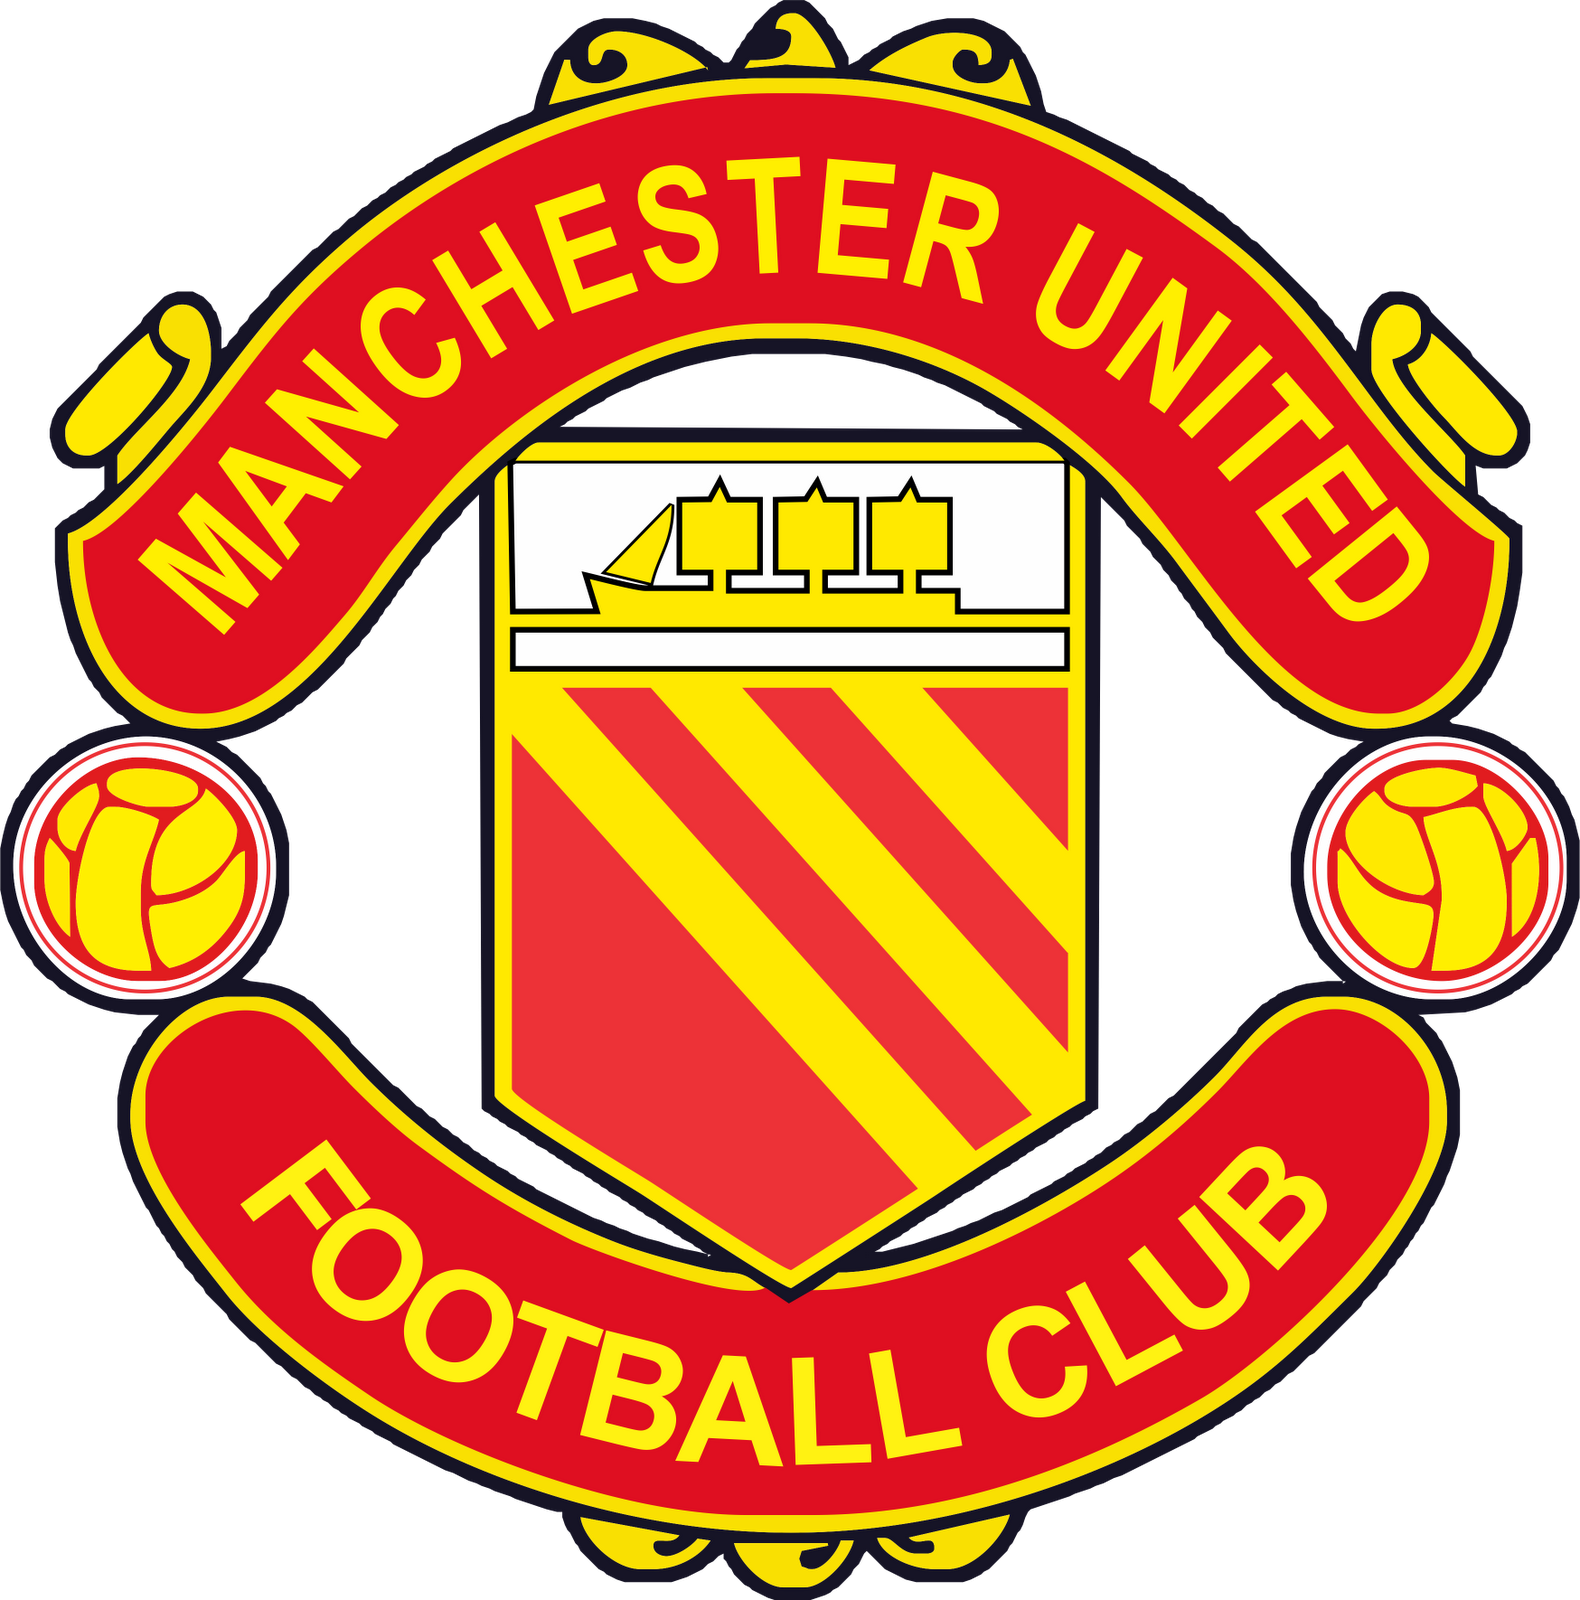 Manchester United logo PNG images free download.